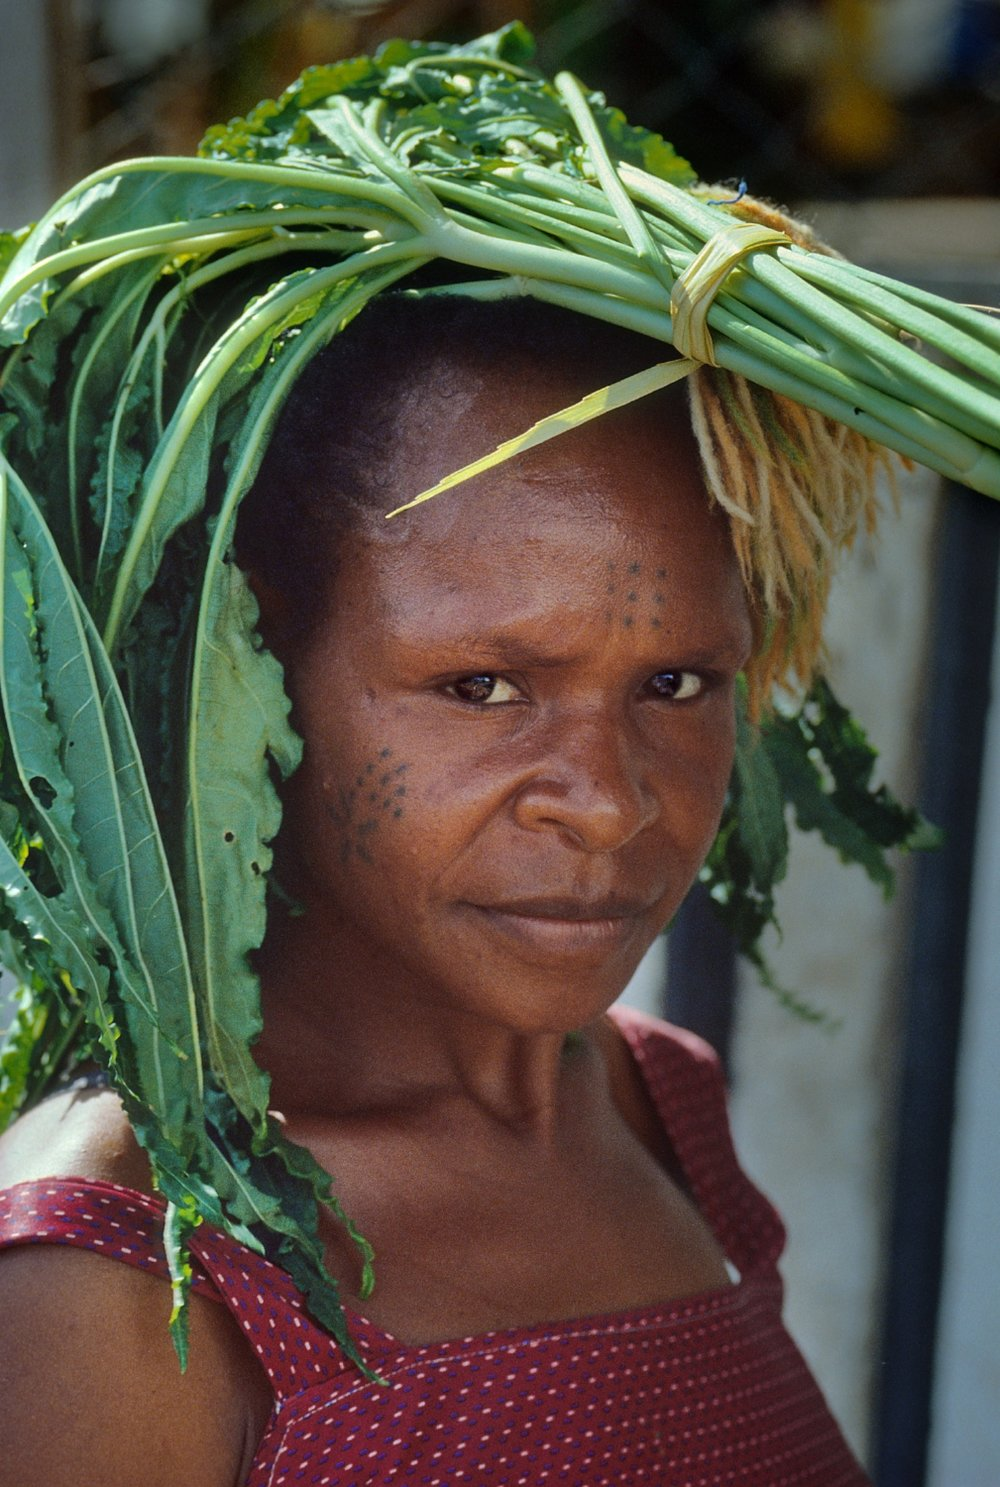 Her arms full of other groceries, an unidentified woman carries food on her head in Port Moresby, Papua New Guinea.